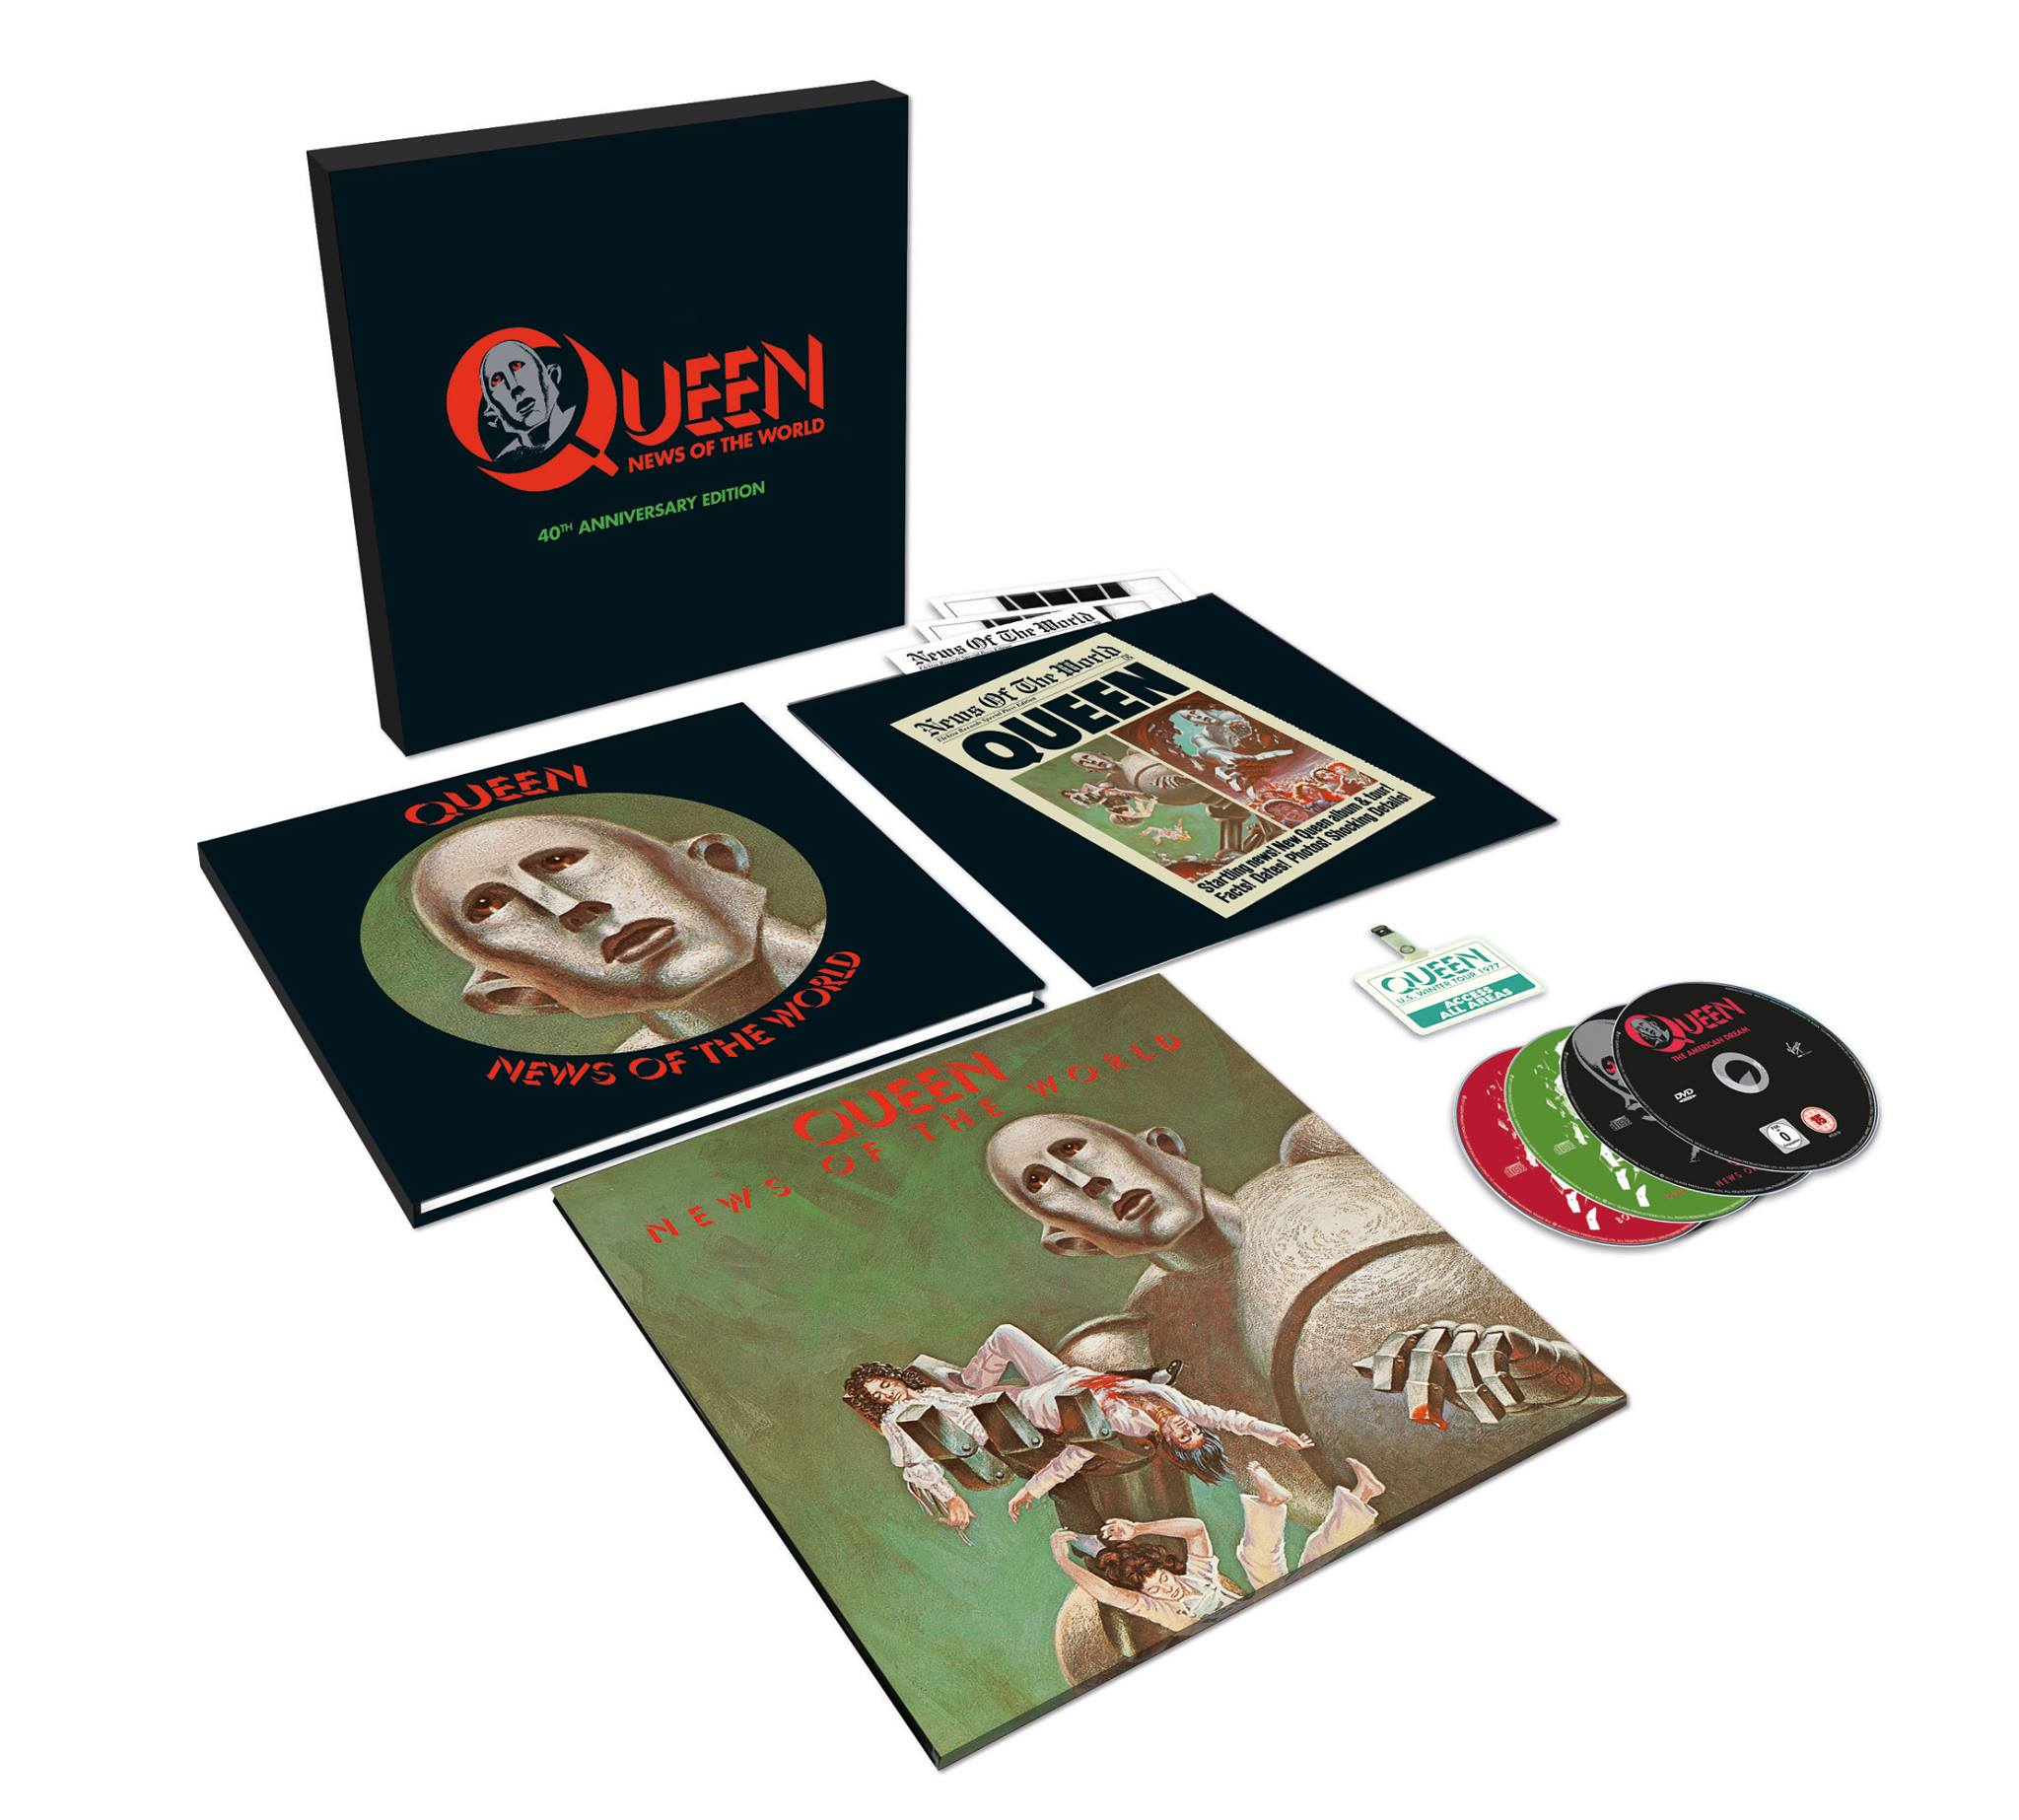 40th Anniversary Edition Box Set